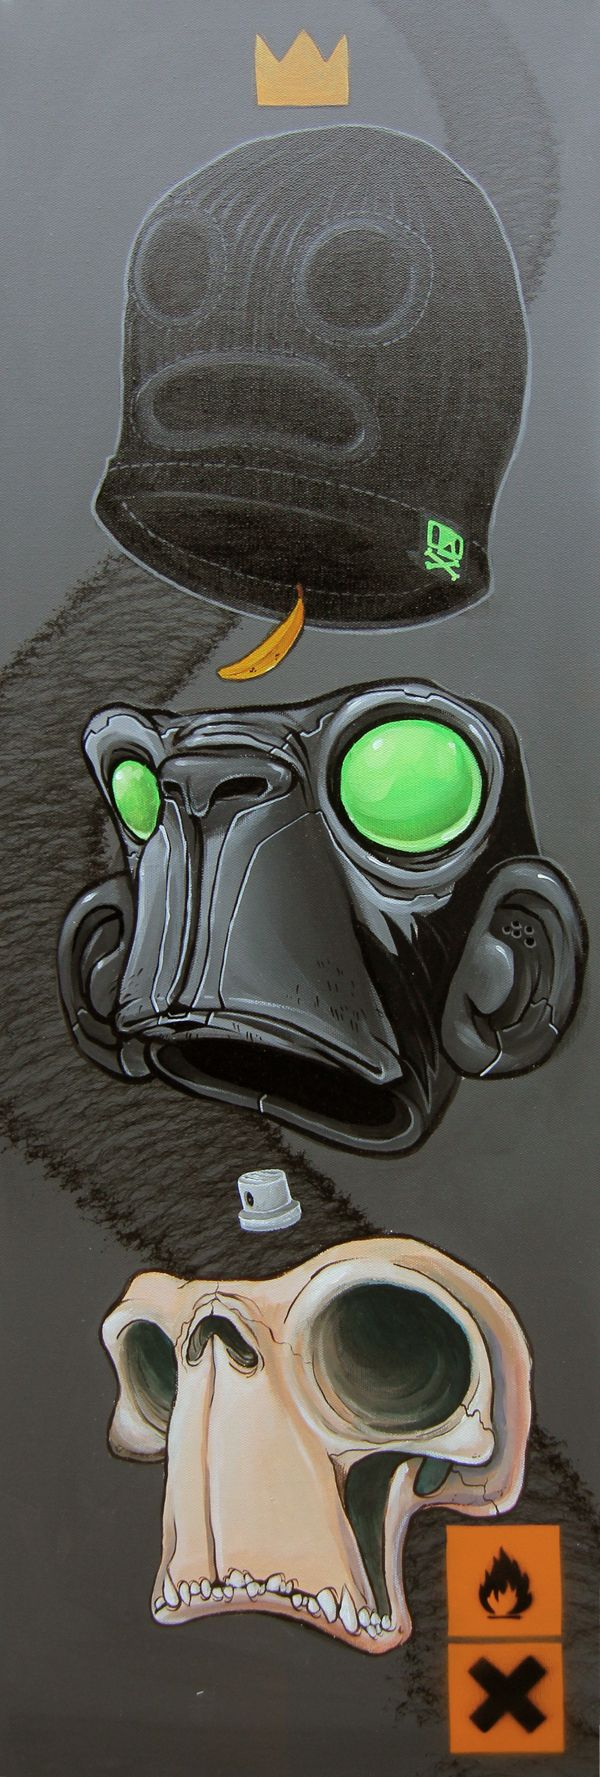 Machinemouth by clog two via behance